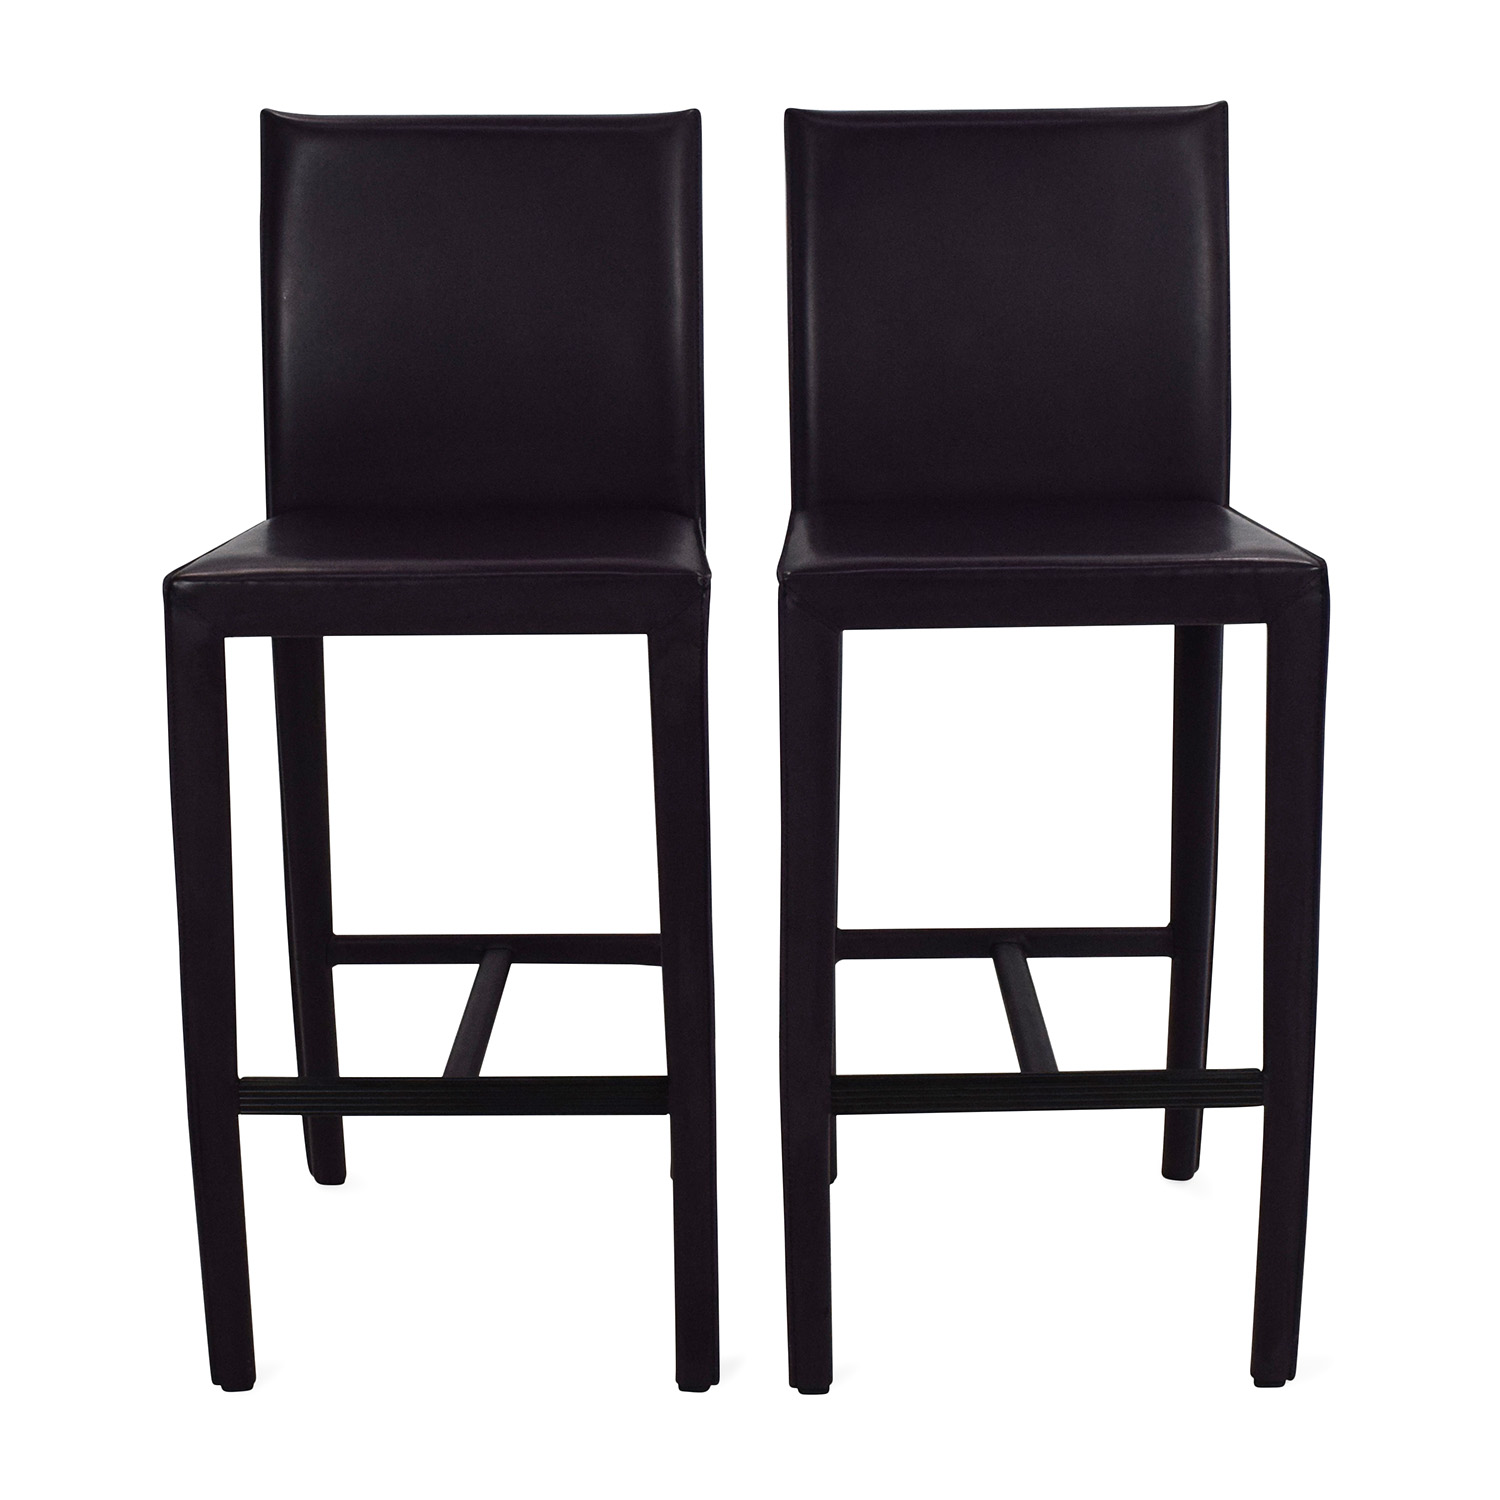 61 Off Crate Barrel Crate Barrel Folio Leather Barstools Chairs